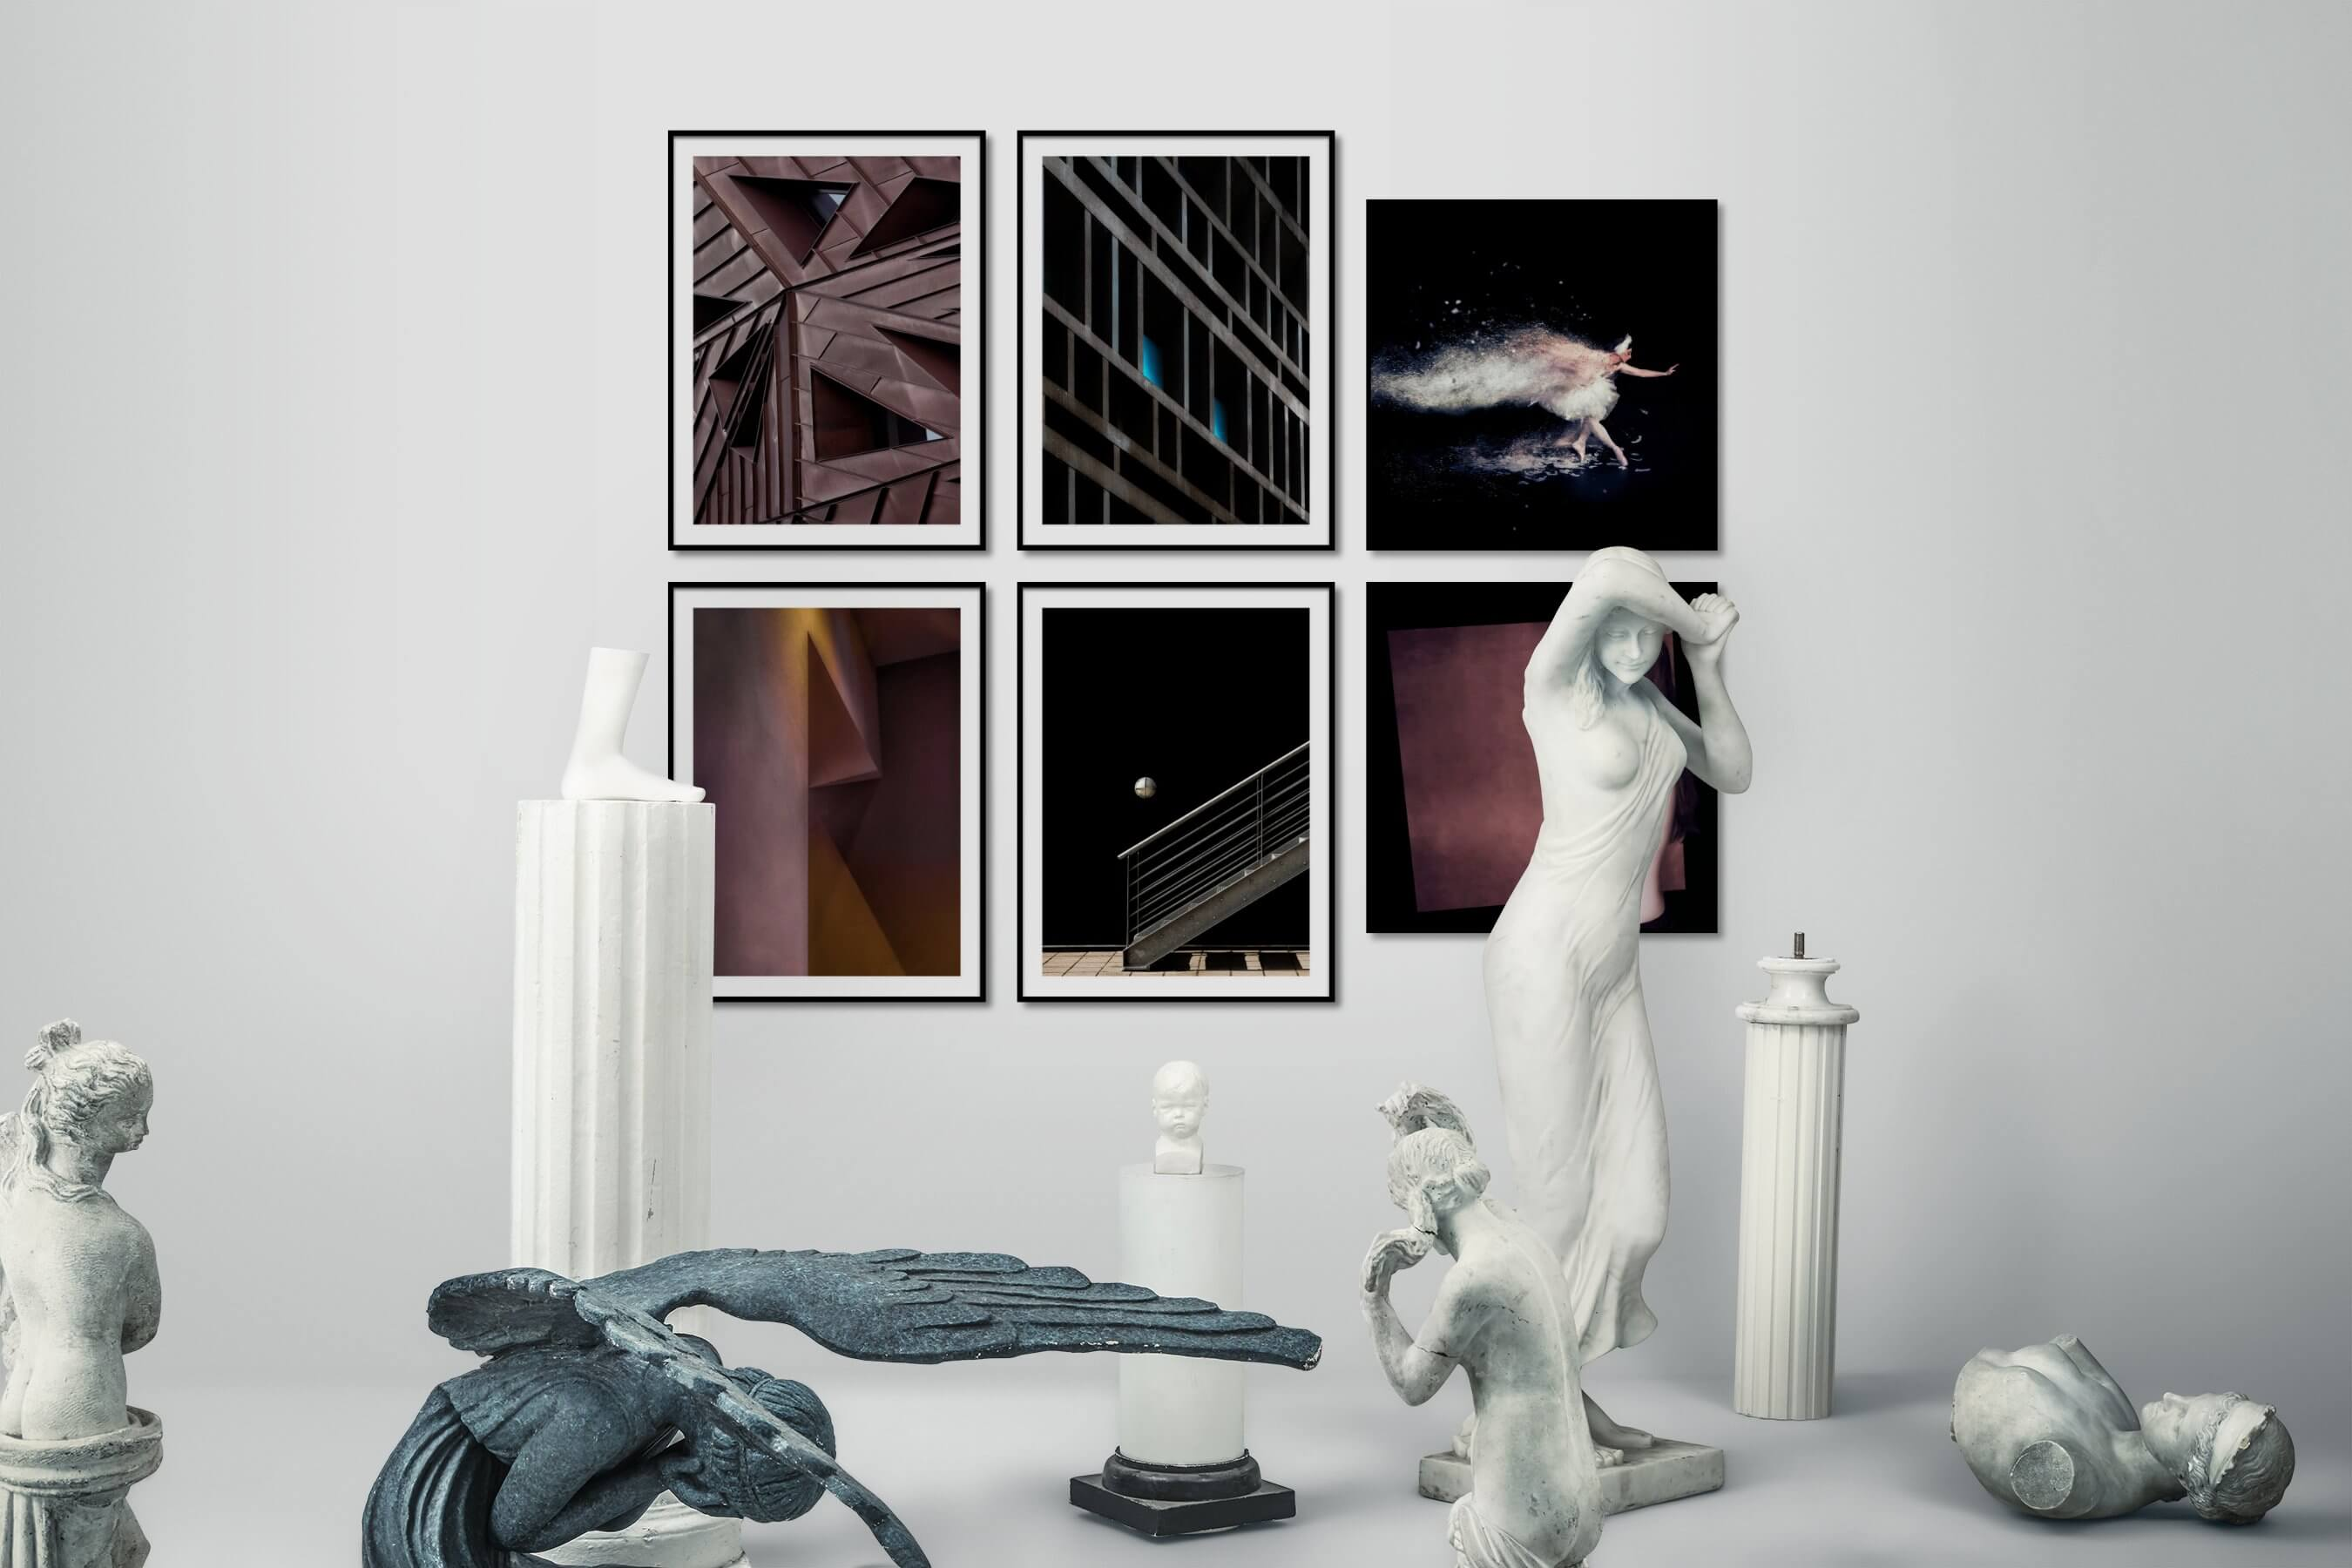 Gallery wall idea with six framed pictures arranged on a wall depicting For the Maximalist, For the Moderate, For the Minimalist, Fashion & Beauty, Artsy, and Dark Tones